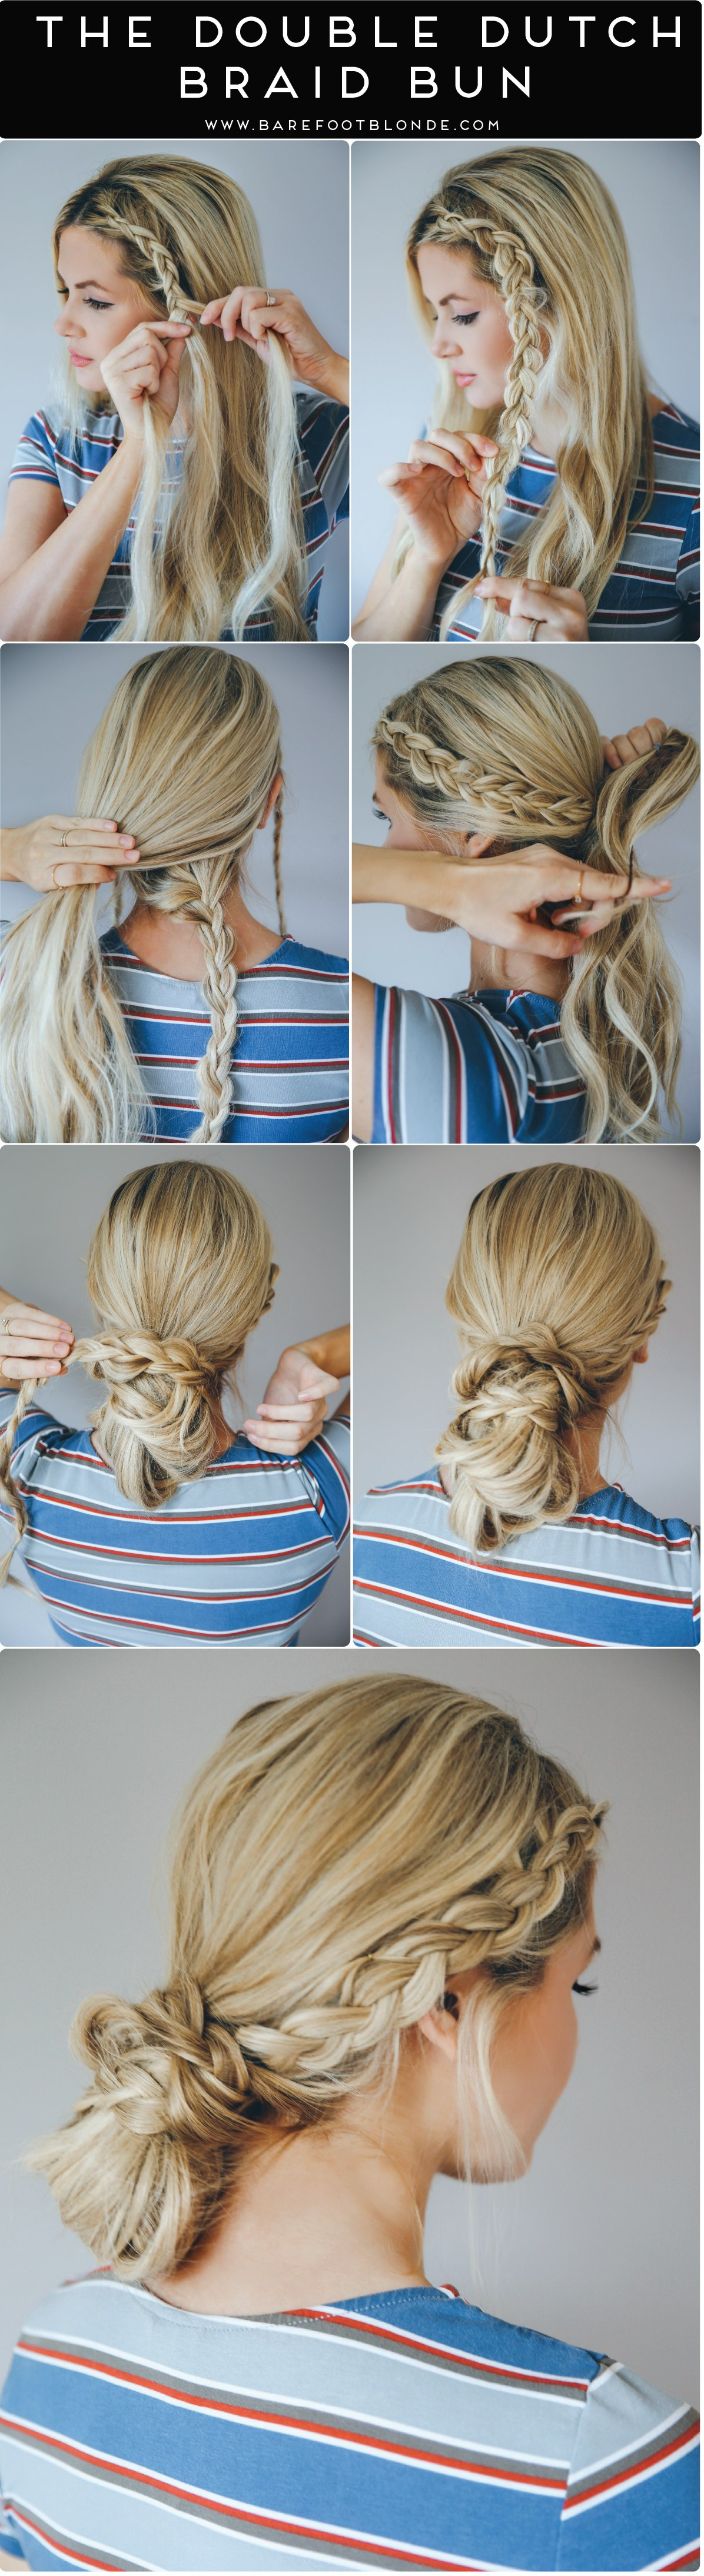 15 Gorgeous Beach Hair Ideas For Summer